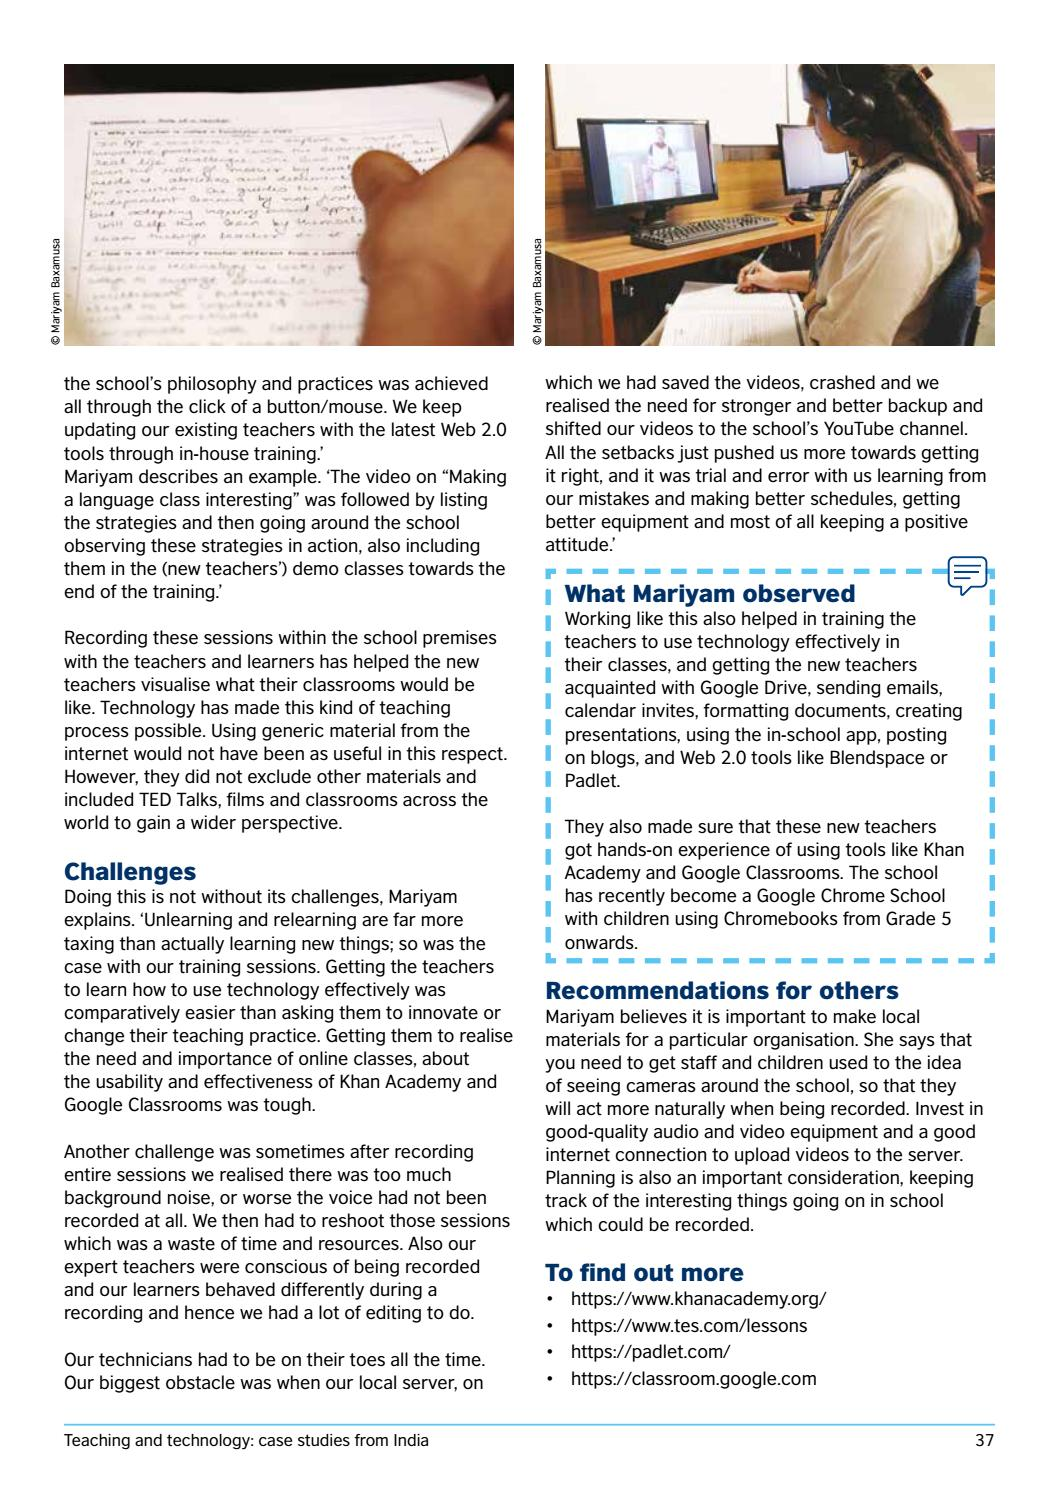 Teaching and technology case studies from India